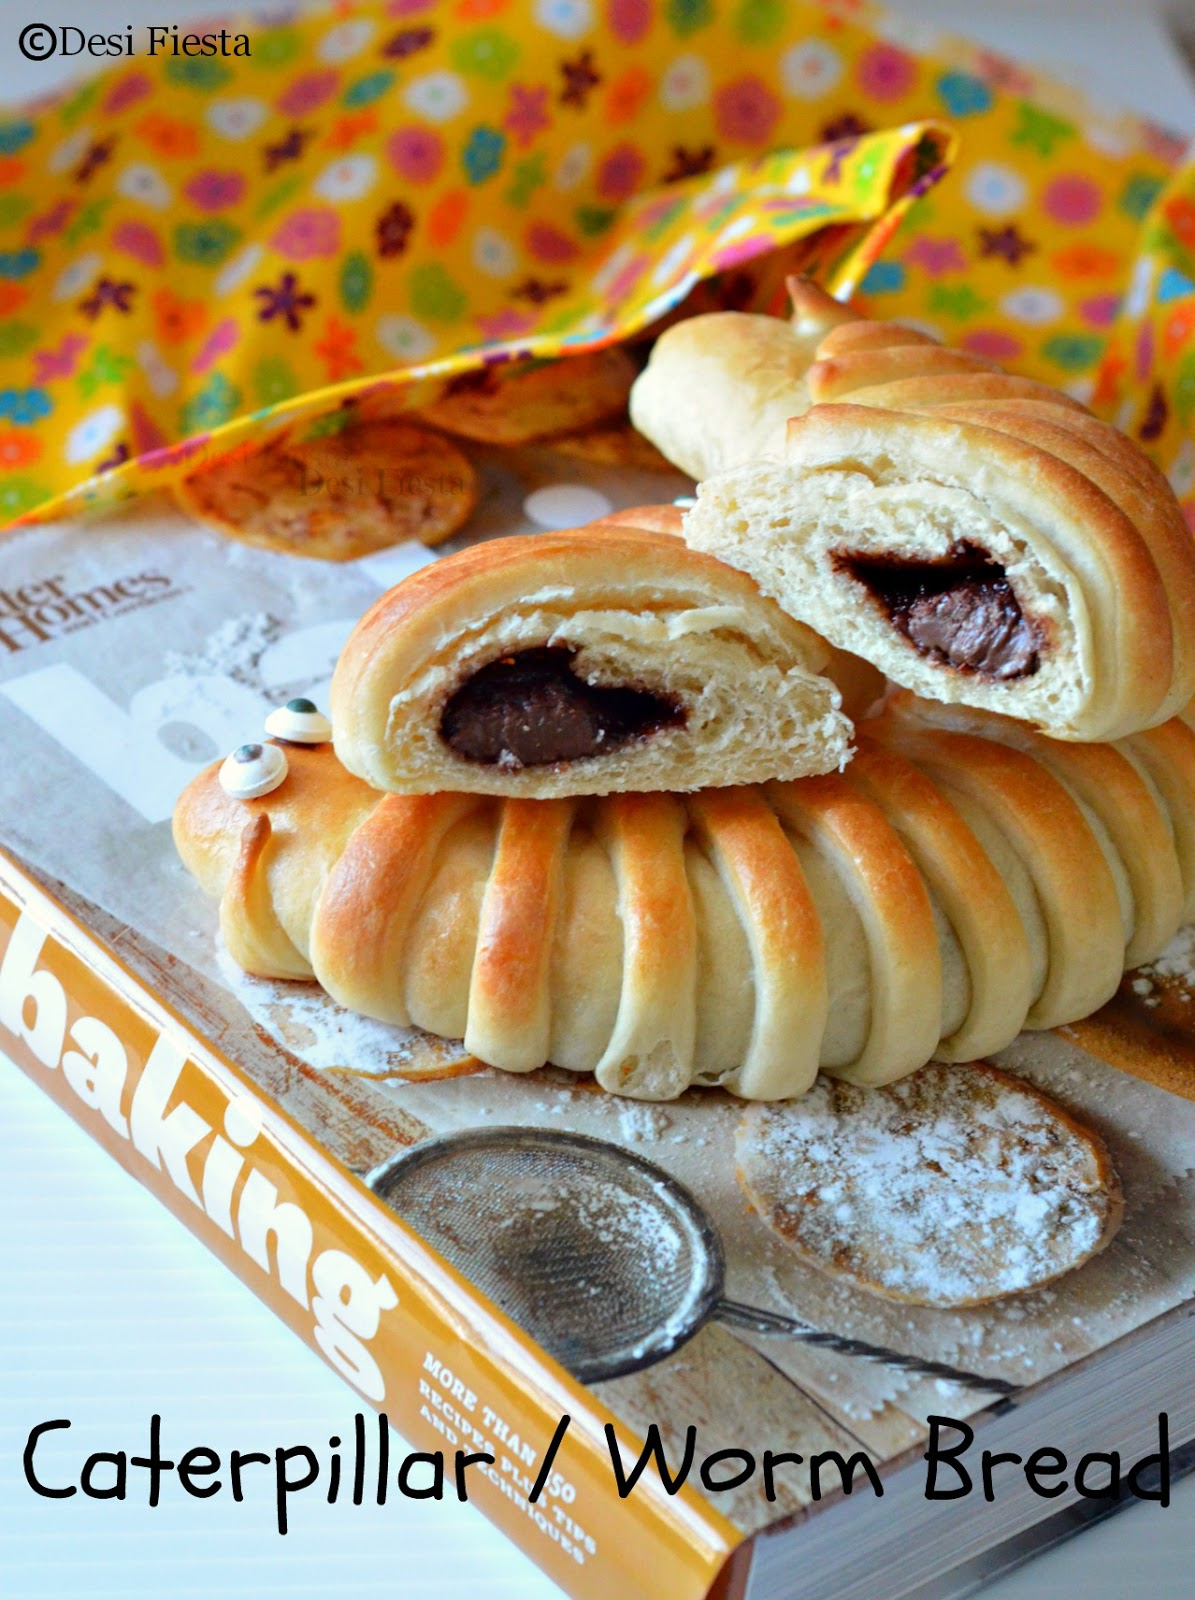 Worm bread with nutella